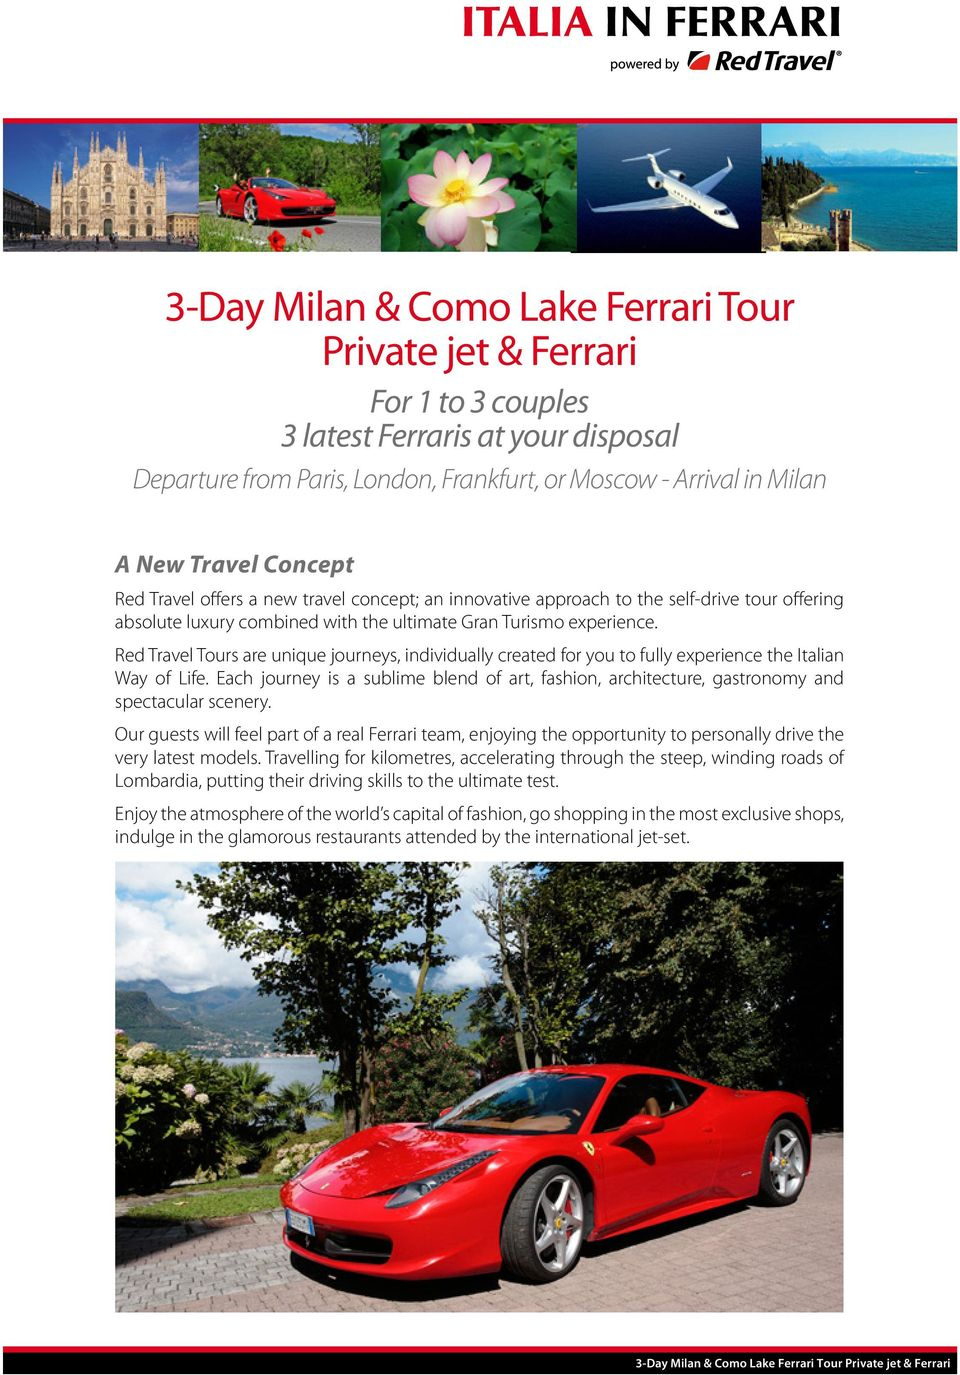 Red Travel Tours are unique journeys, individually created for you to fully experience the Italian Way of Life.